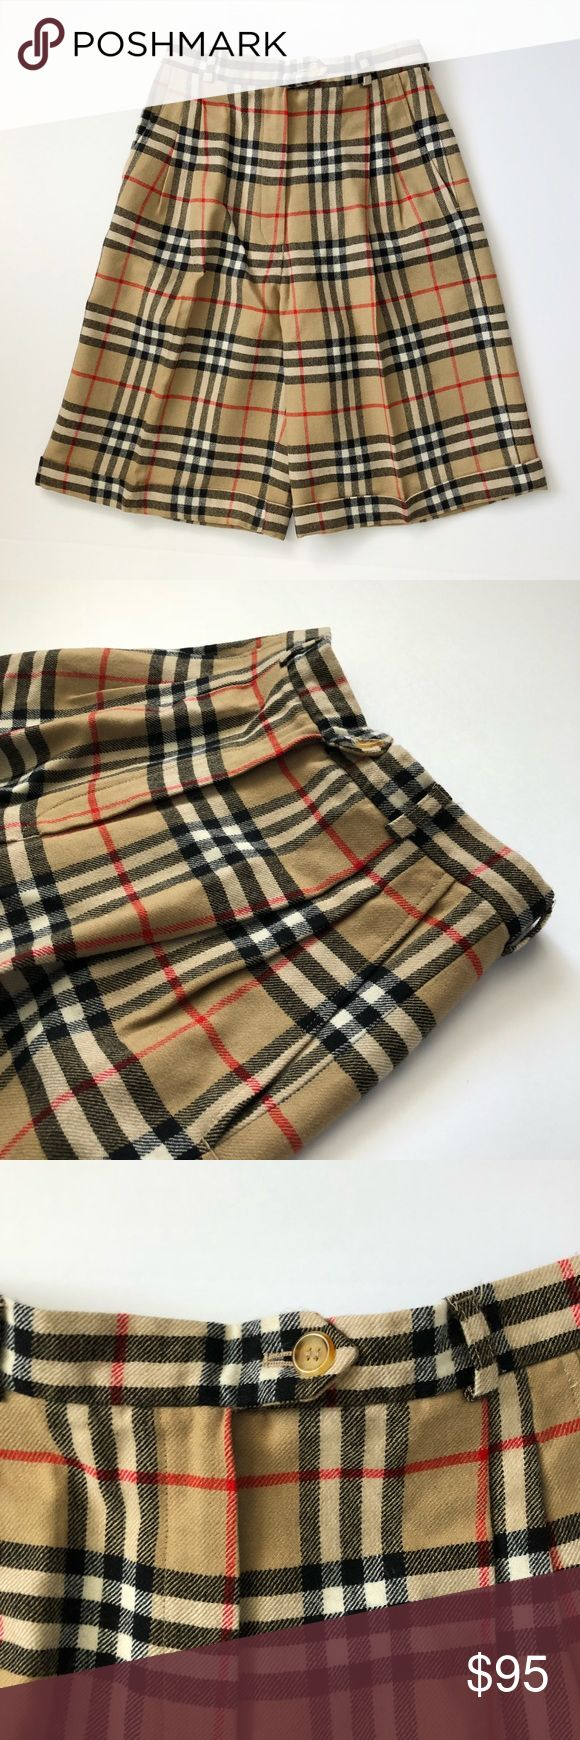 """Burberry Vintage High Waisted Culottes Shorts Pre-loved, like new, Women's wool pleated front culottes, Nova Check, button and zip fly closure, two side pockets, viscose lined, tagged 8 regular, 26"""" waistline, 13"""" front rise, 9.5"""" inseam. Please feel free to ask questions. No trades. Burberry Shorts"""